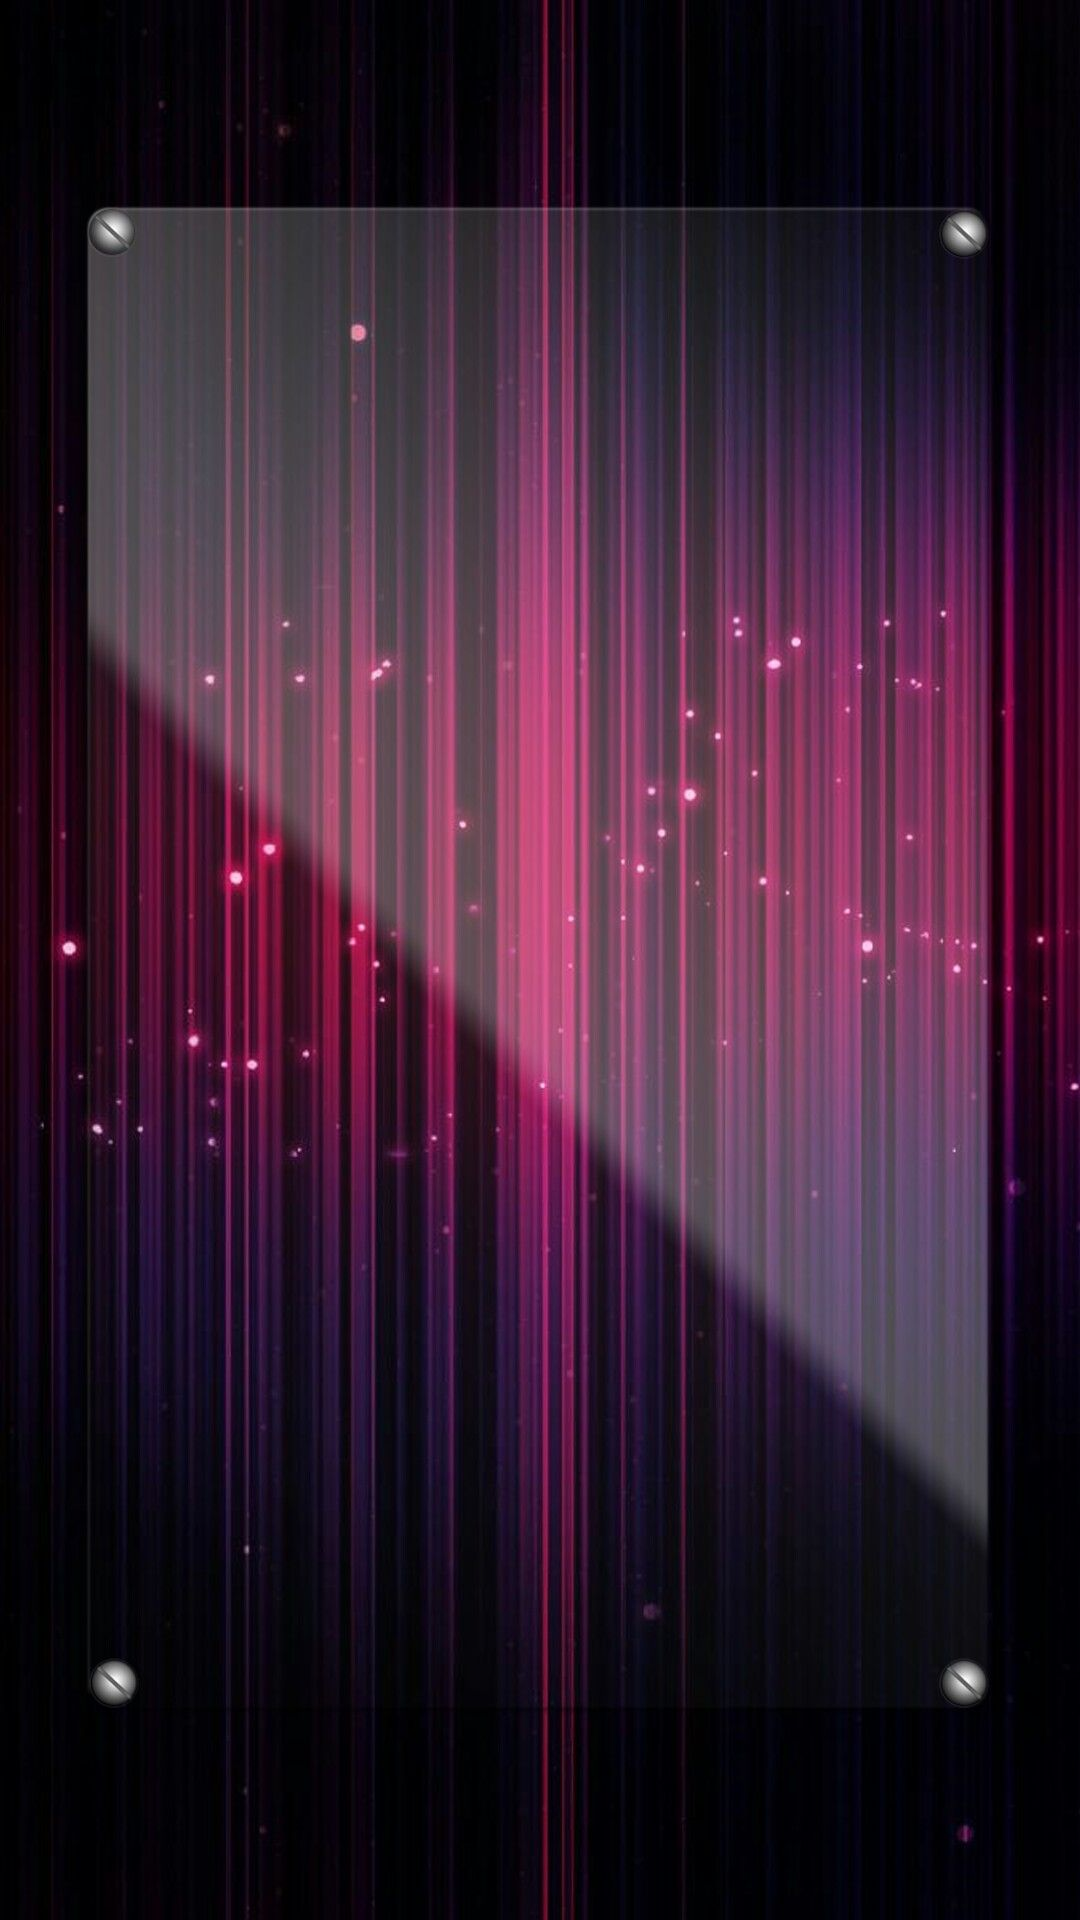 Pink and Purple Strobe Lights Wallpaper *Abstract and